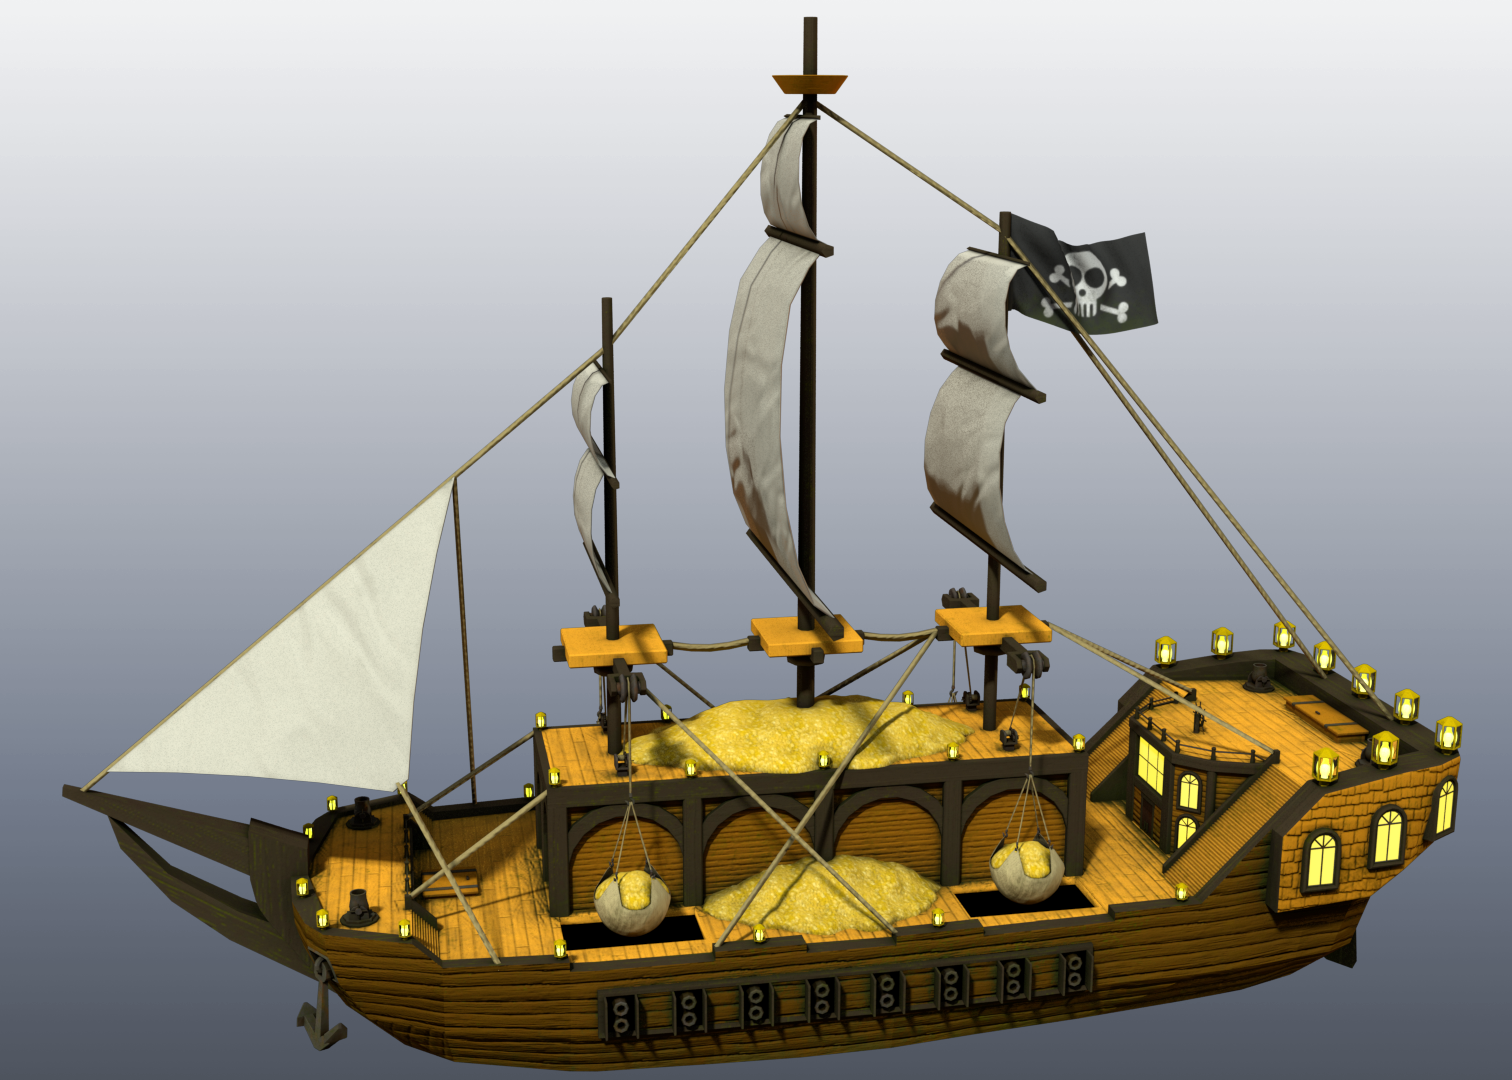 pirateShip_FlatColor_web.png